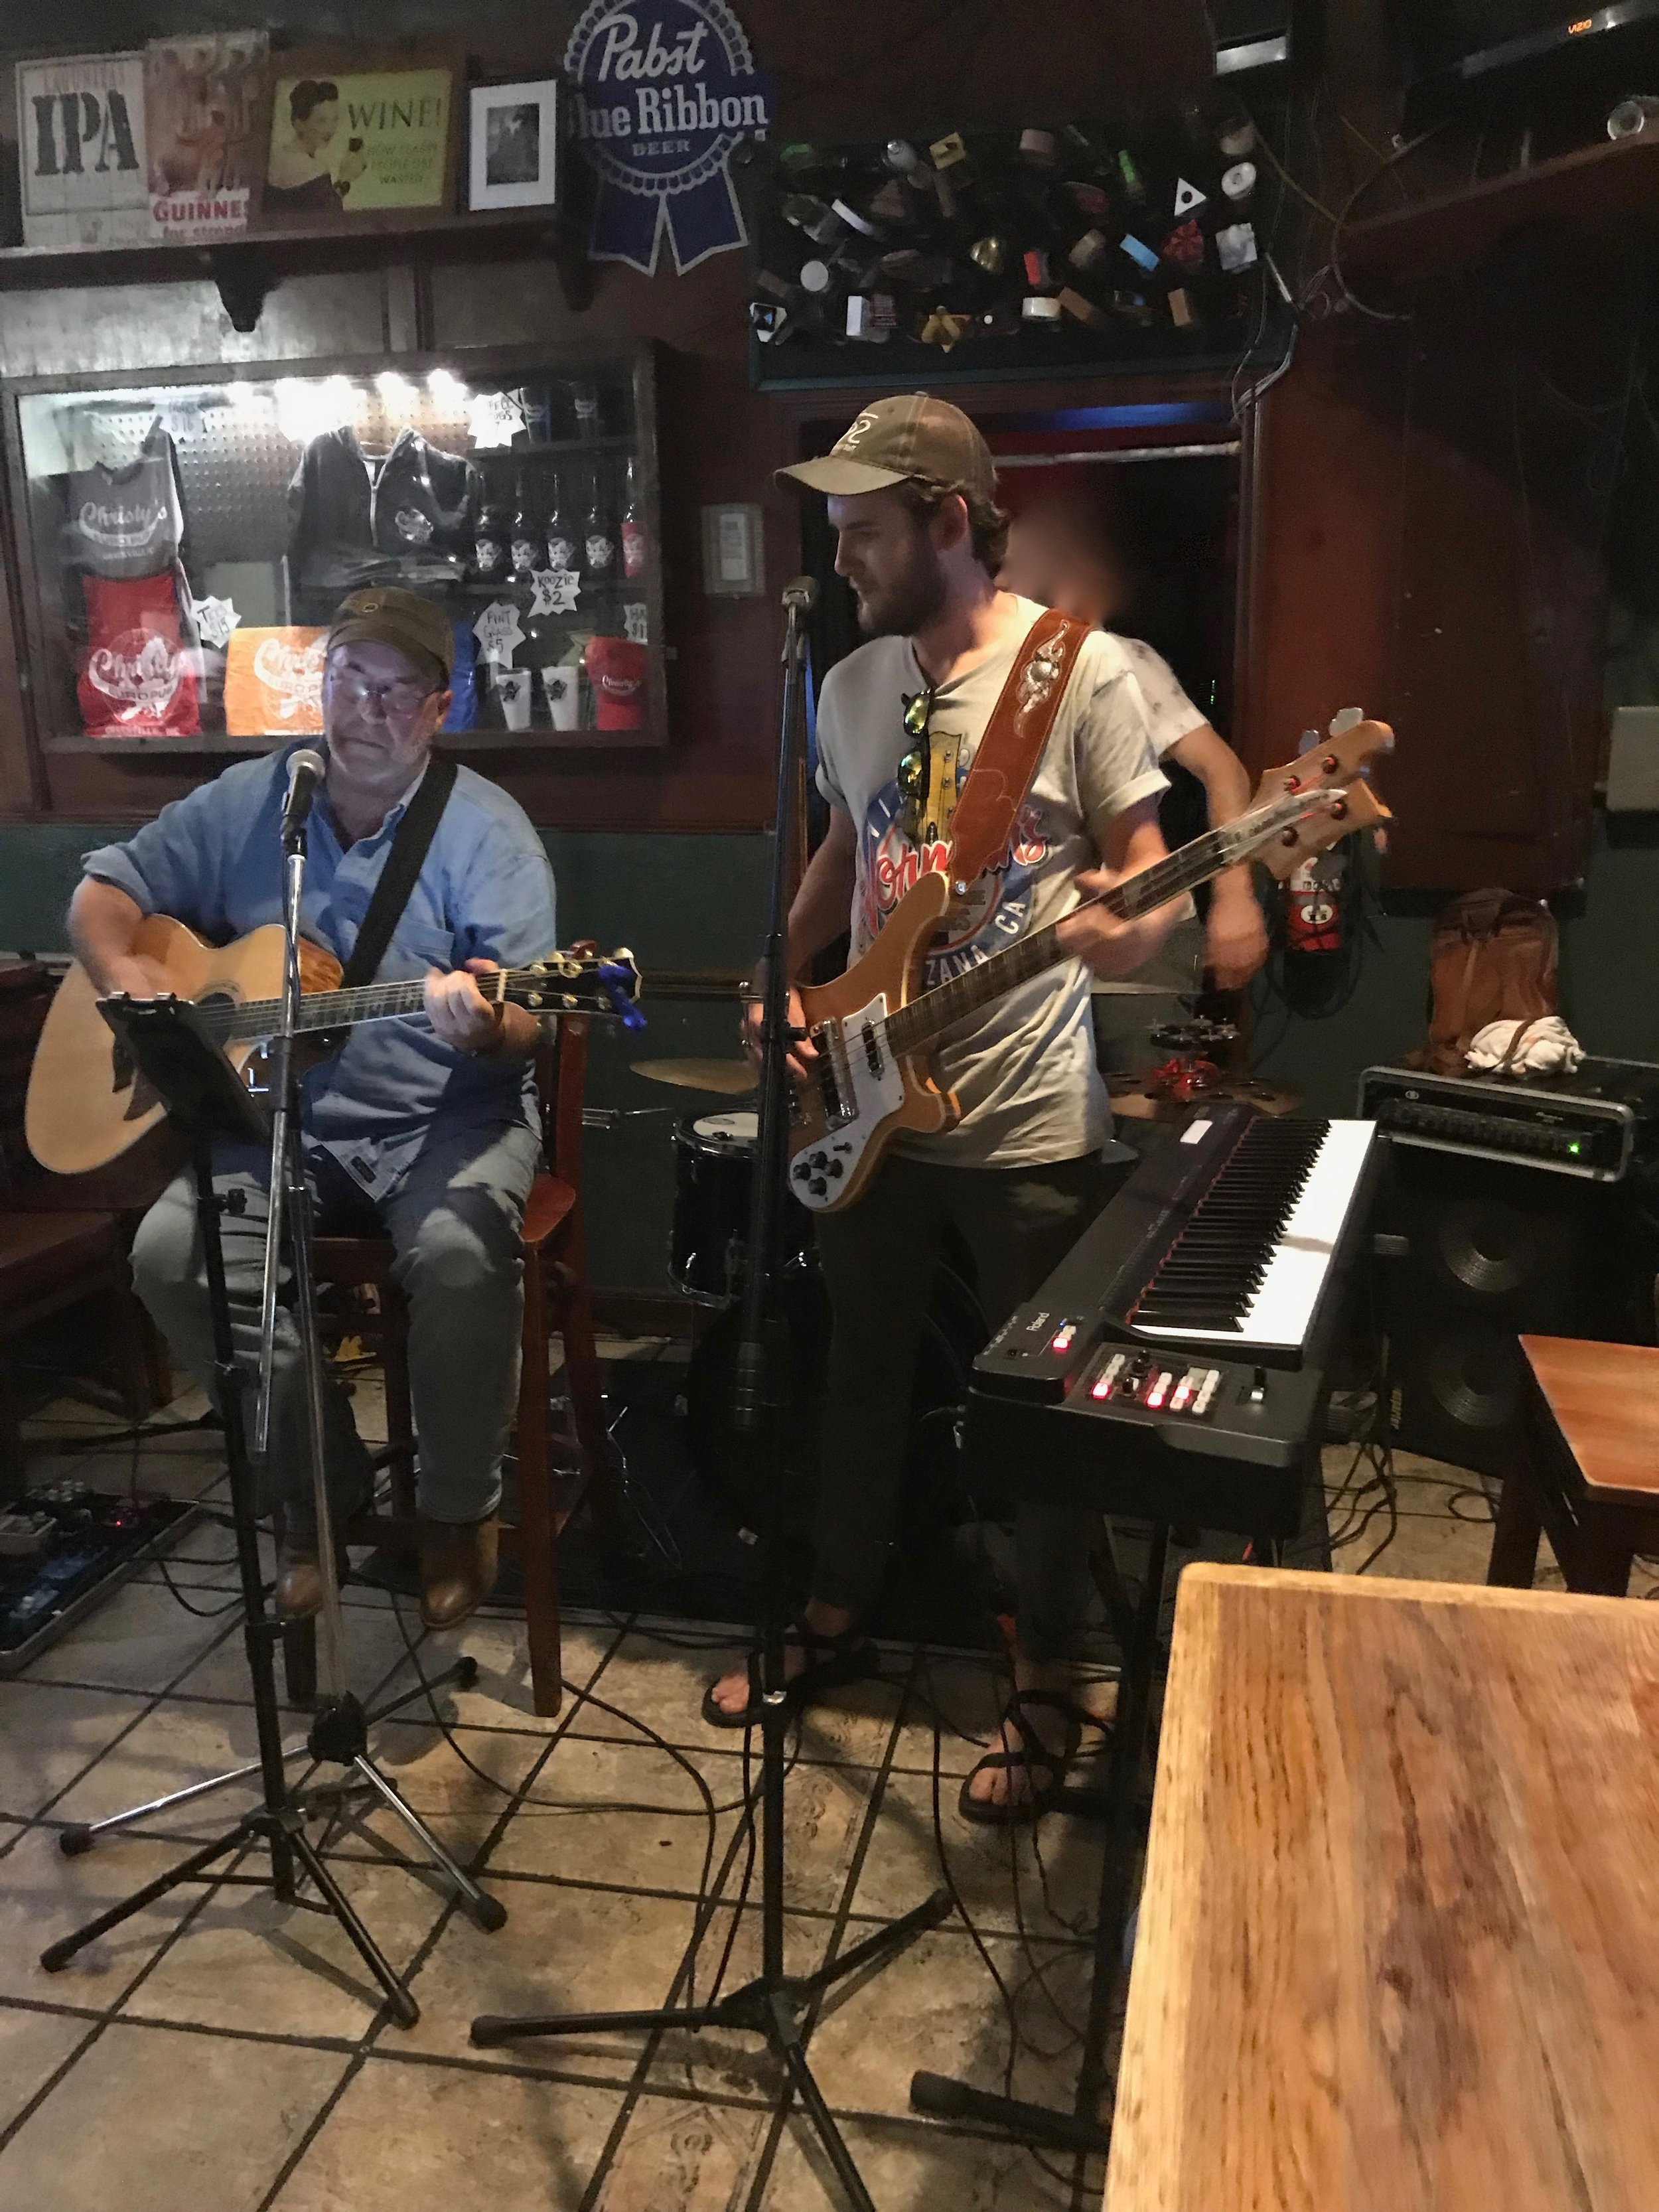 Playing with my friend and Zack Greene at Christy's Pub in Greenville, NC.